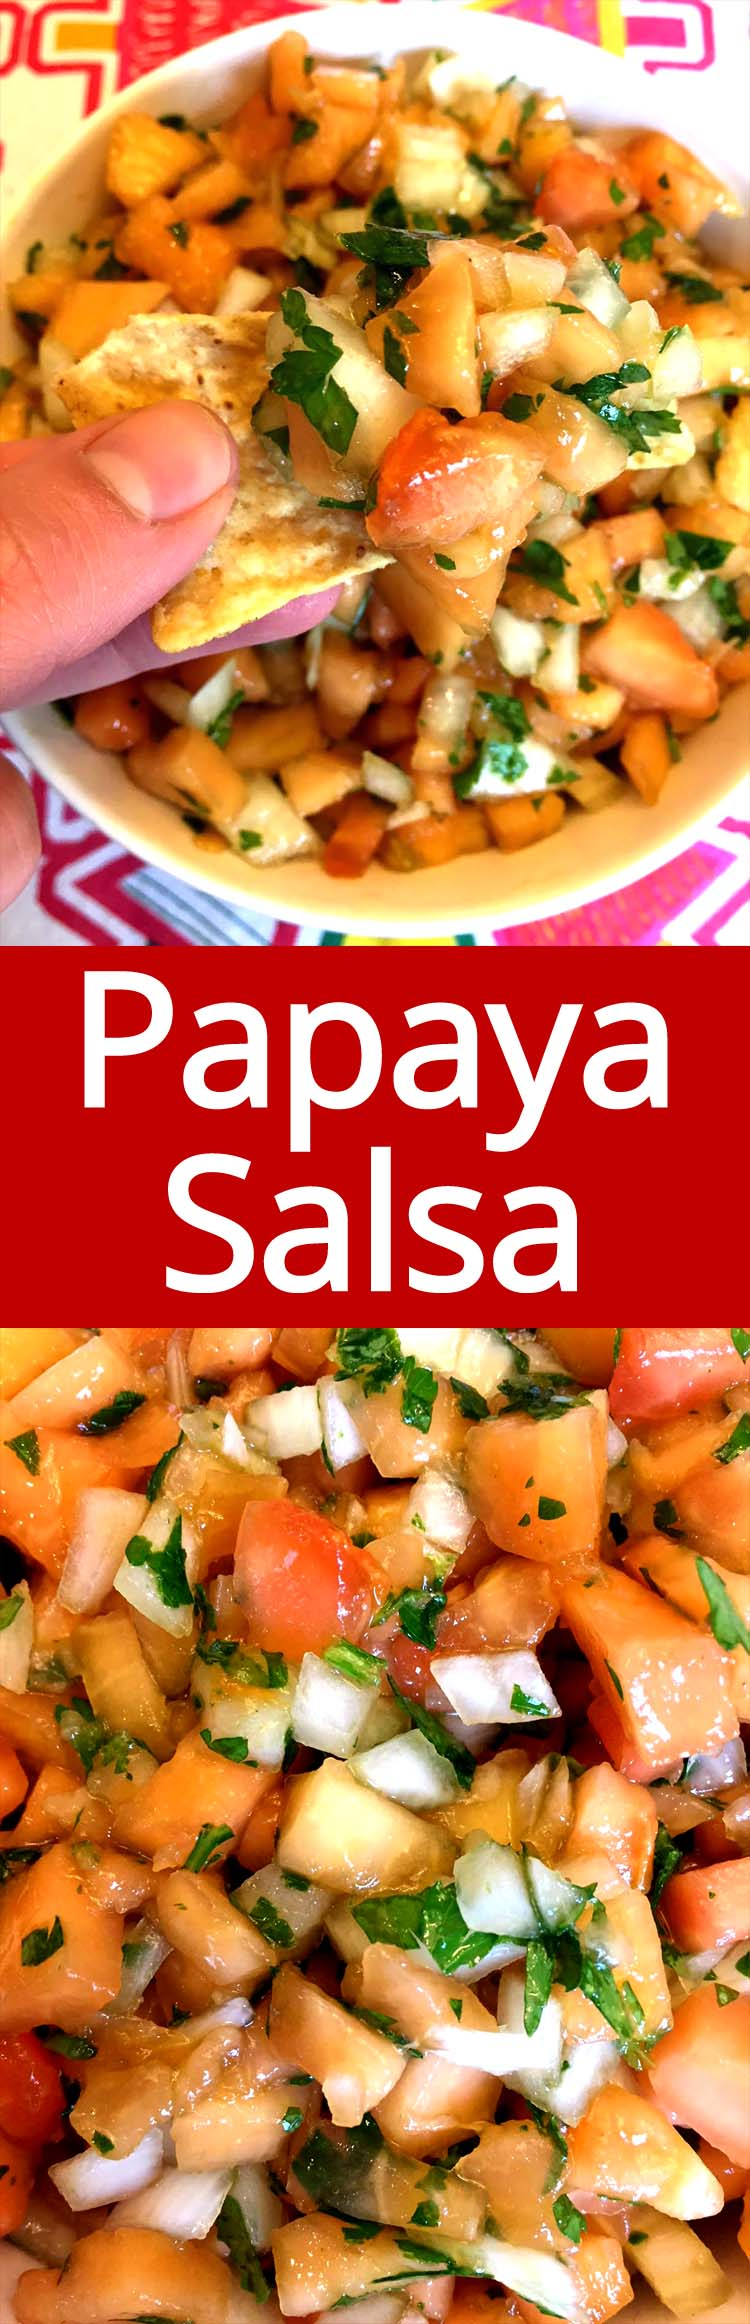 This papaya salsa is amazing! It's like the taste in the tropics in a bowl! So easy to make and always a hit!